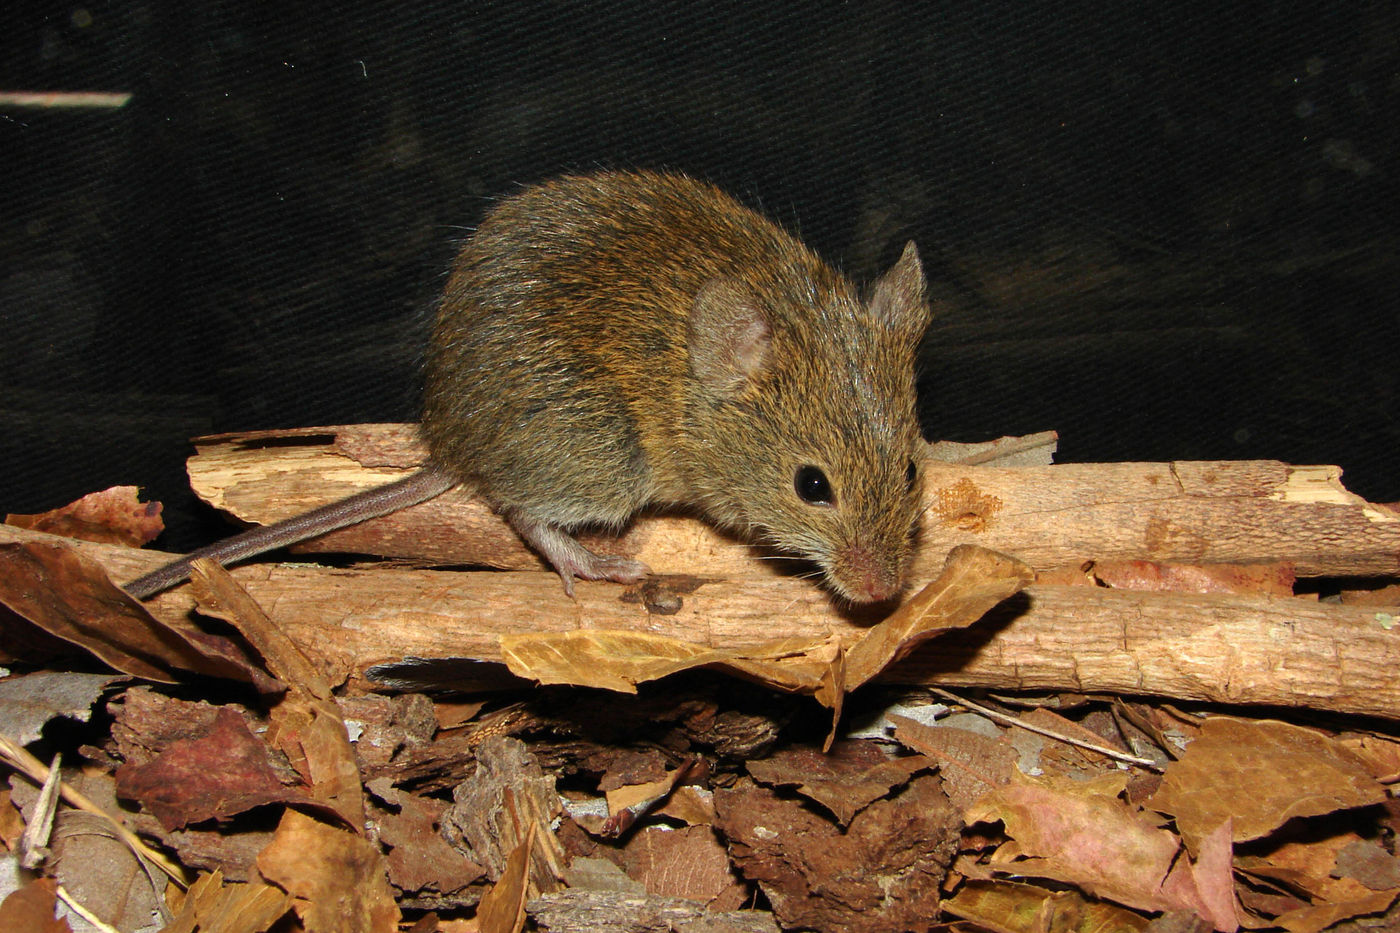 A mouse perched on sticks surrounded by dried brown leaves.